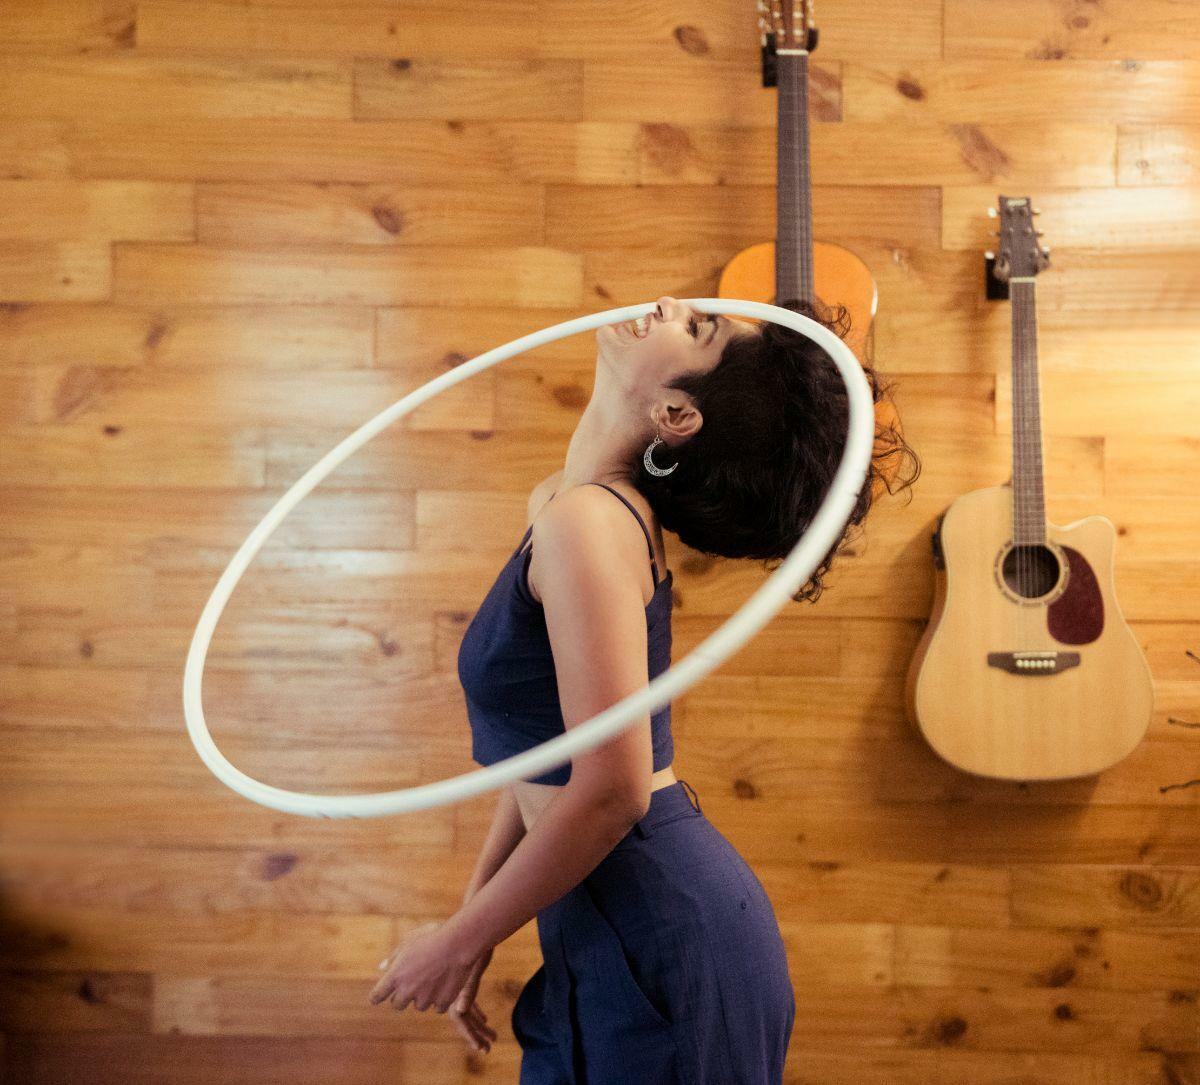 Hoop hula nose spinning wooden wall happy